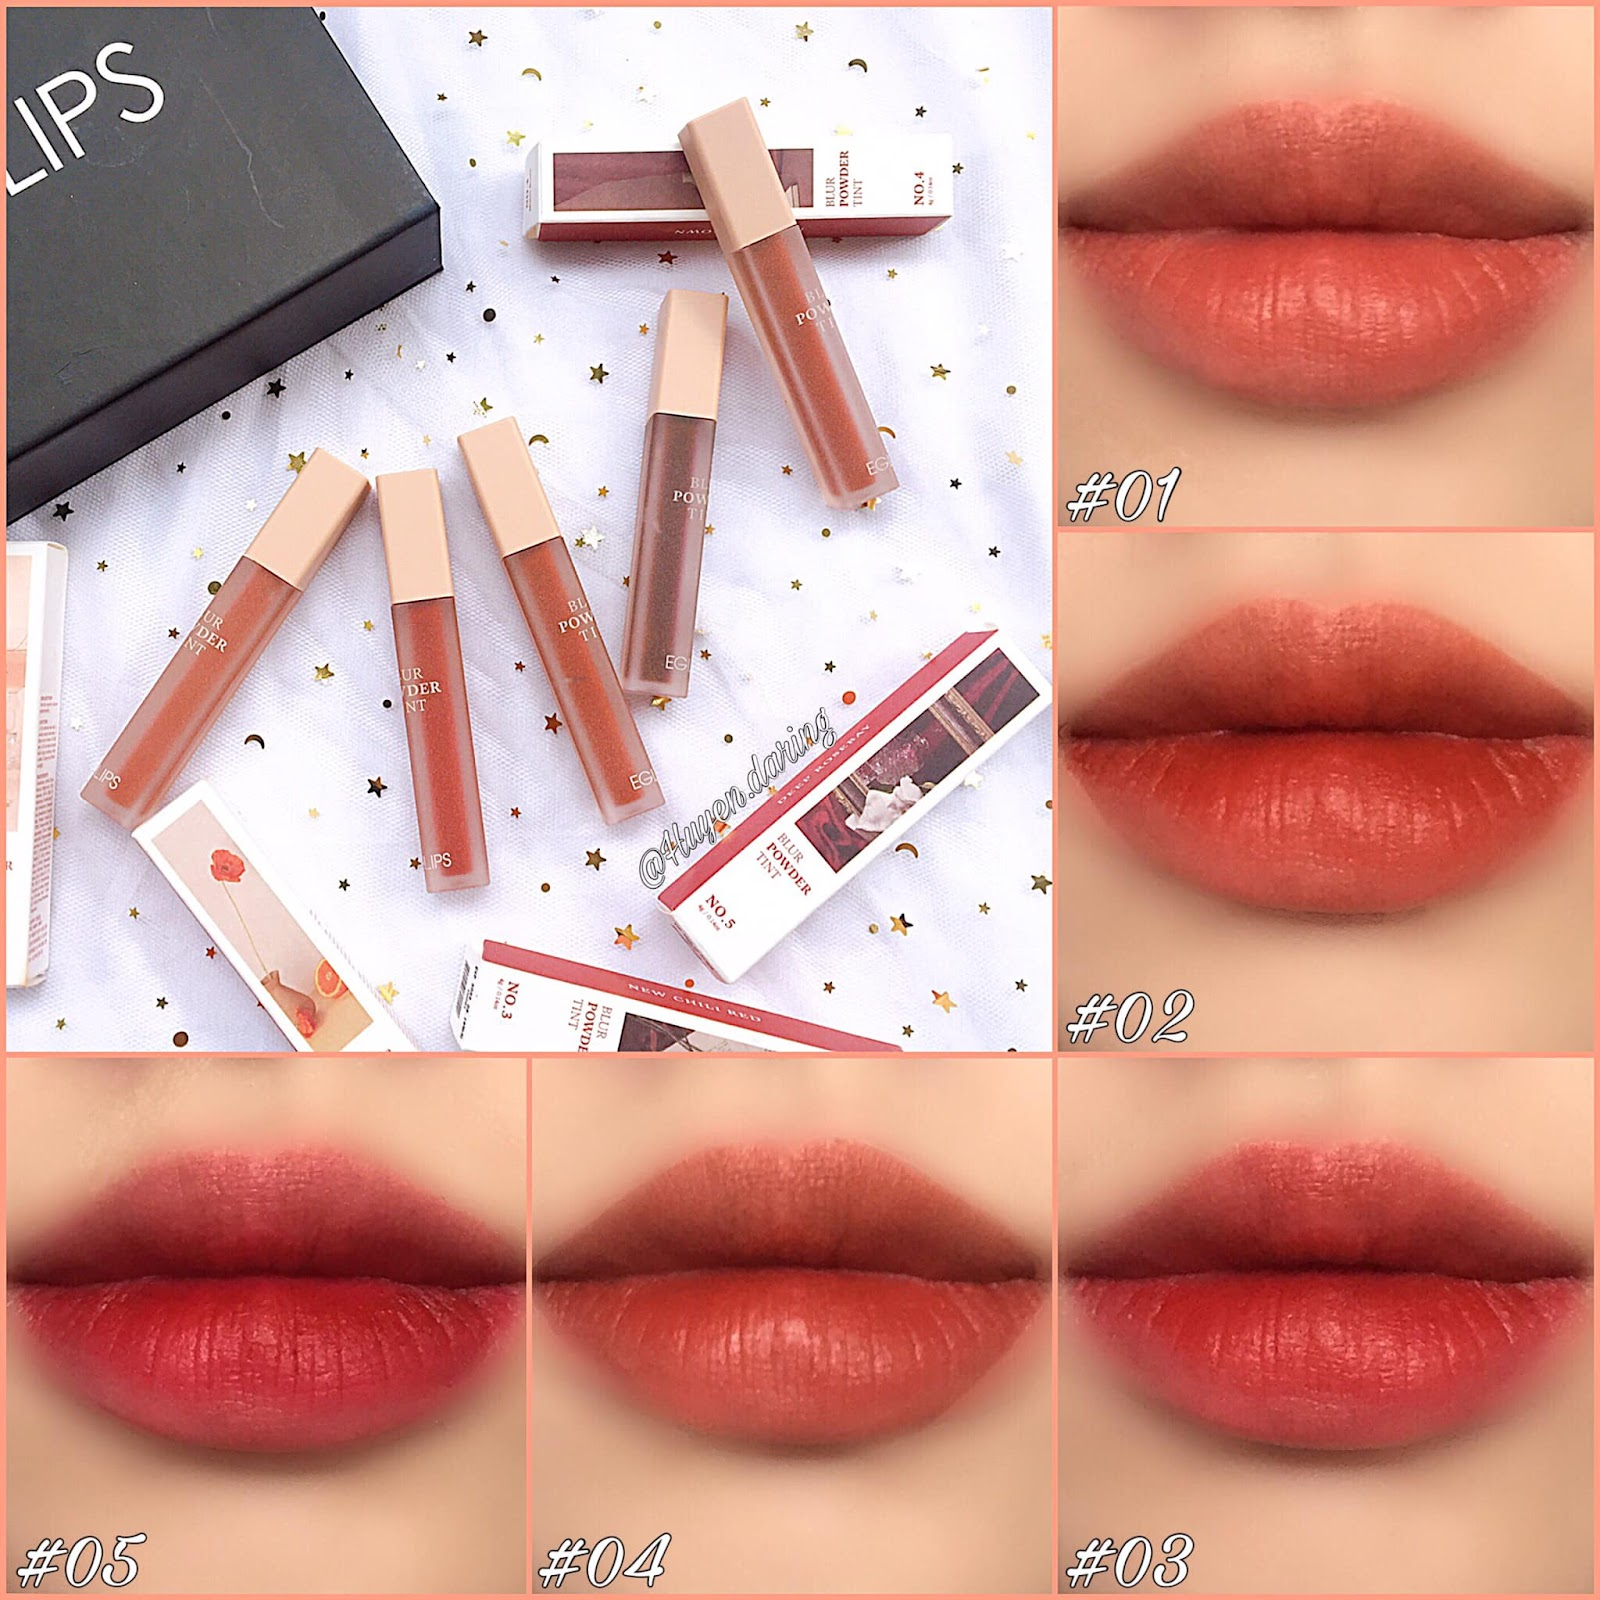 Eglips Blur Powder Tint